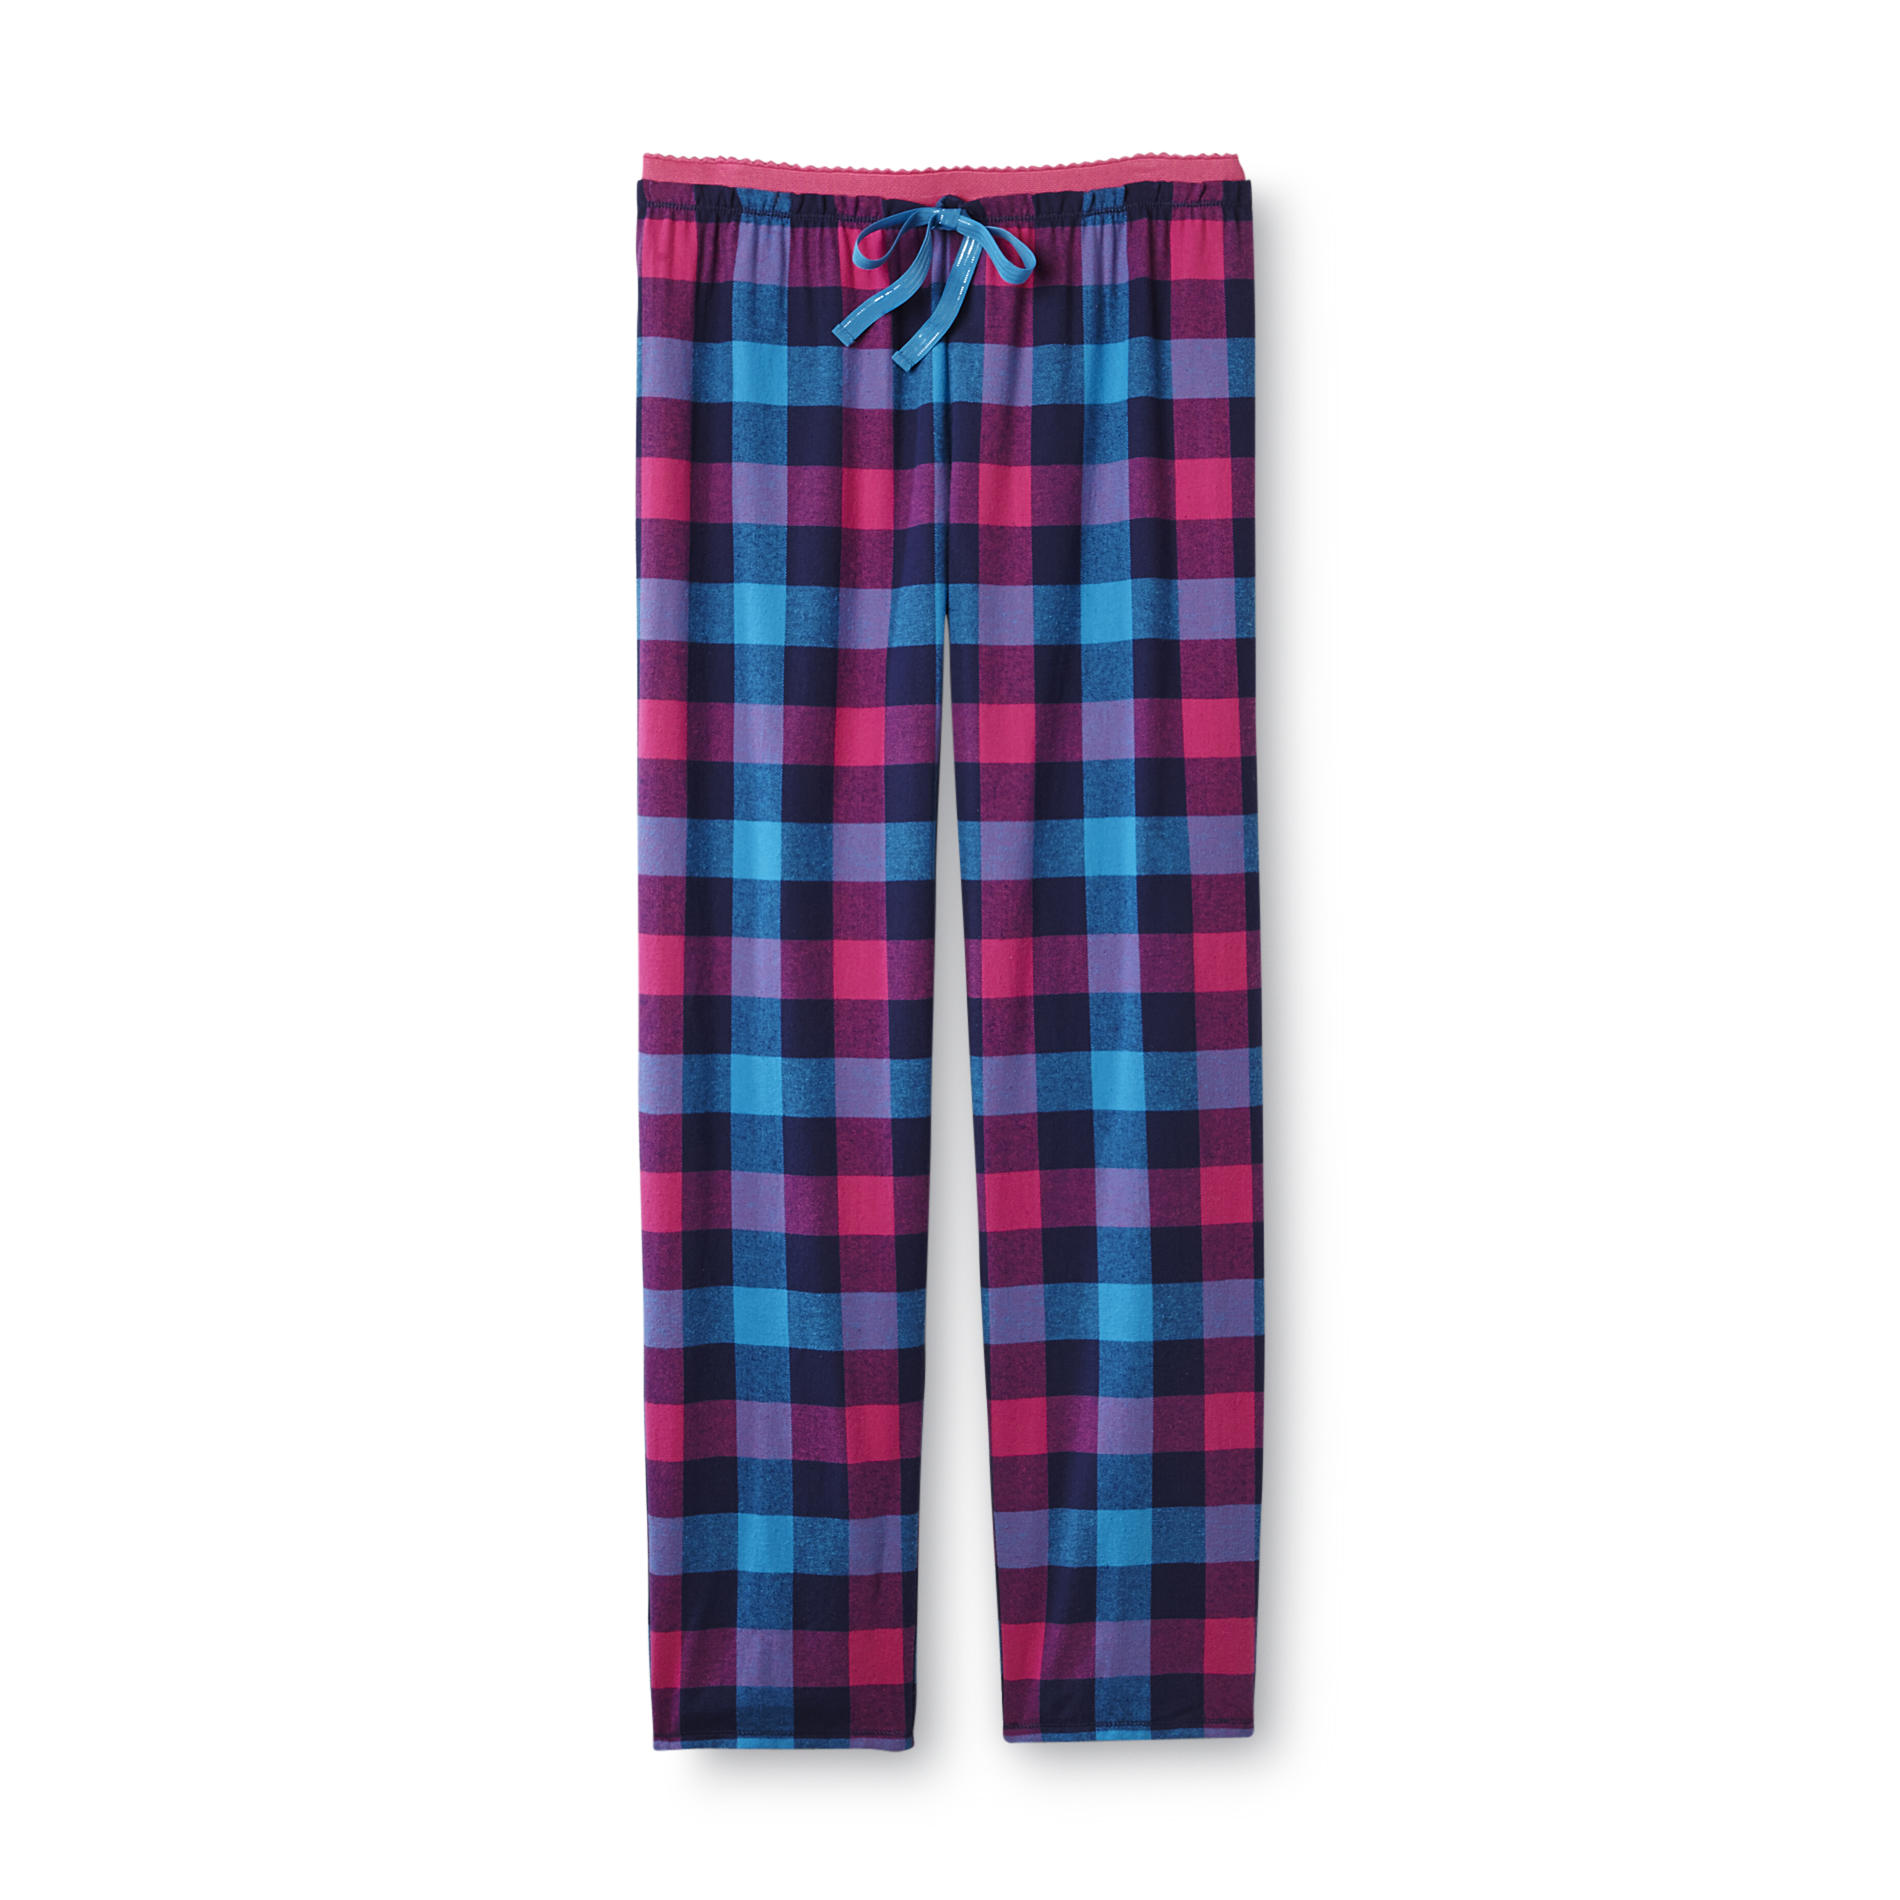 Joe Boxer Women's Flannel Sleep Pants - Blue Plaid at Kmart.com